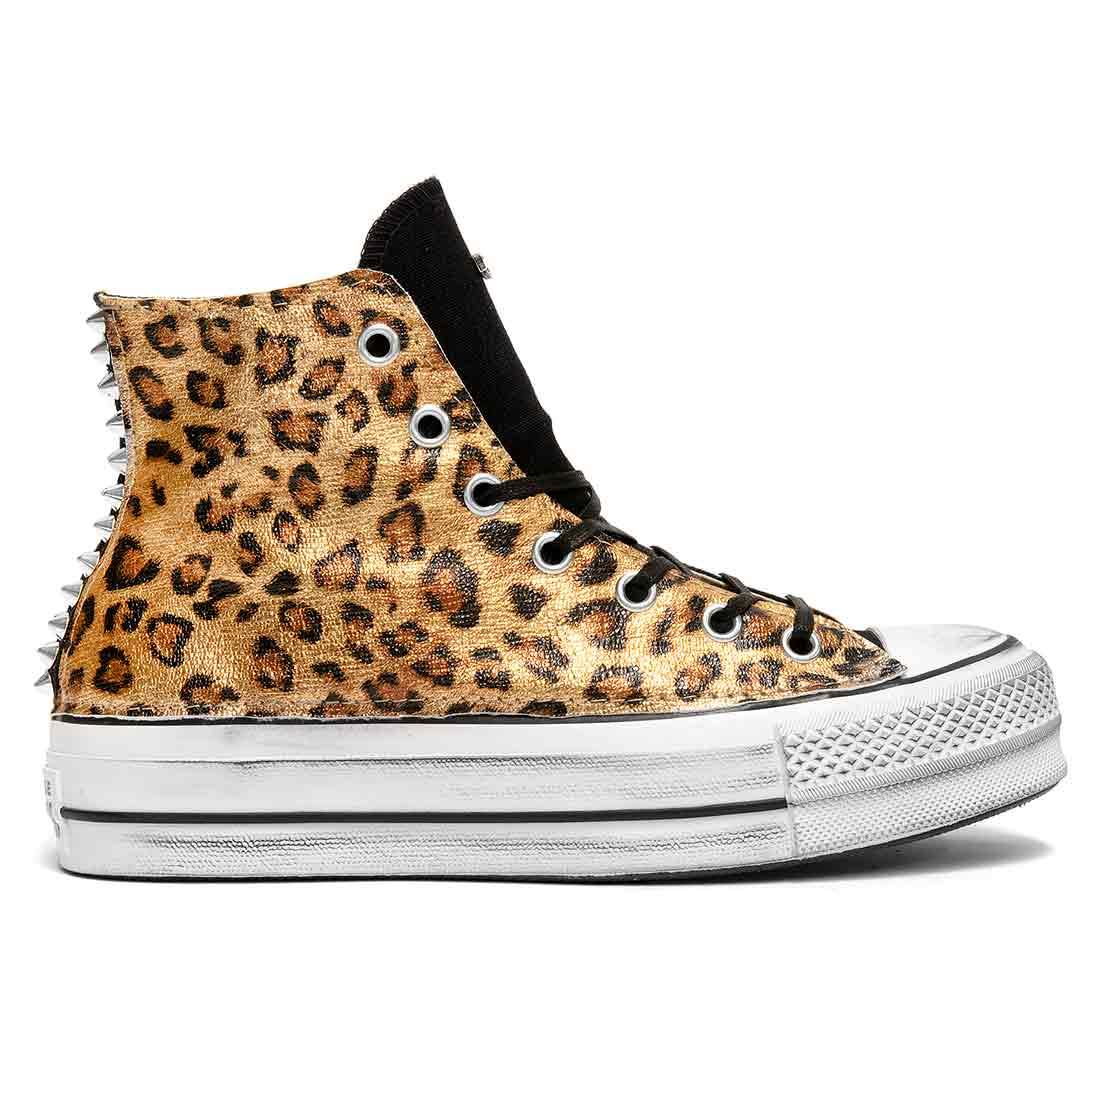 converse all star alte  leopardate oro metallizzato borchie